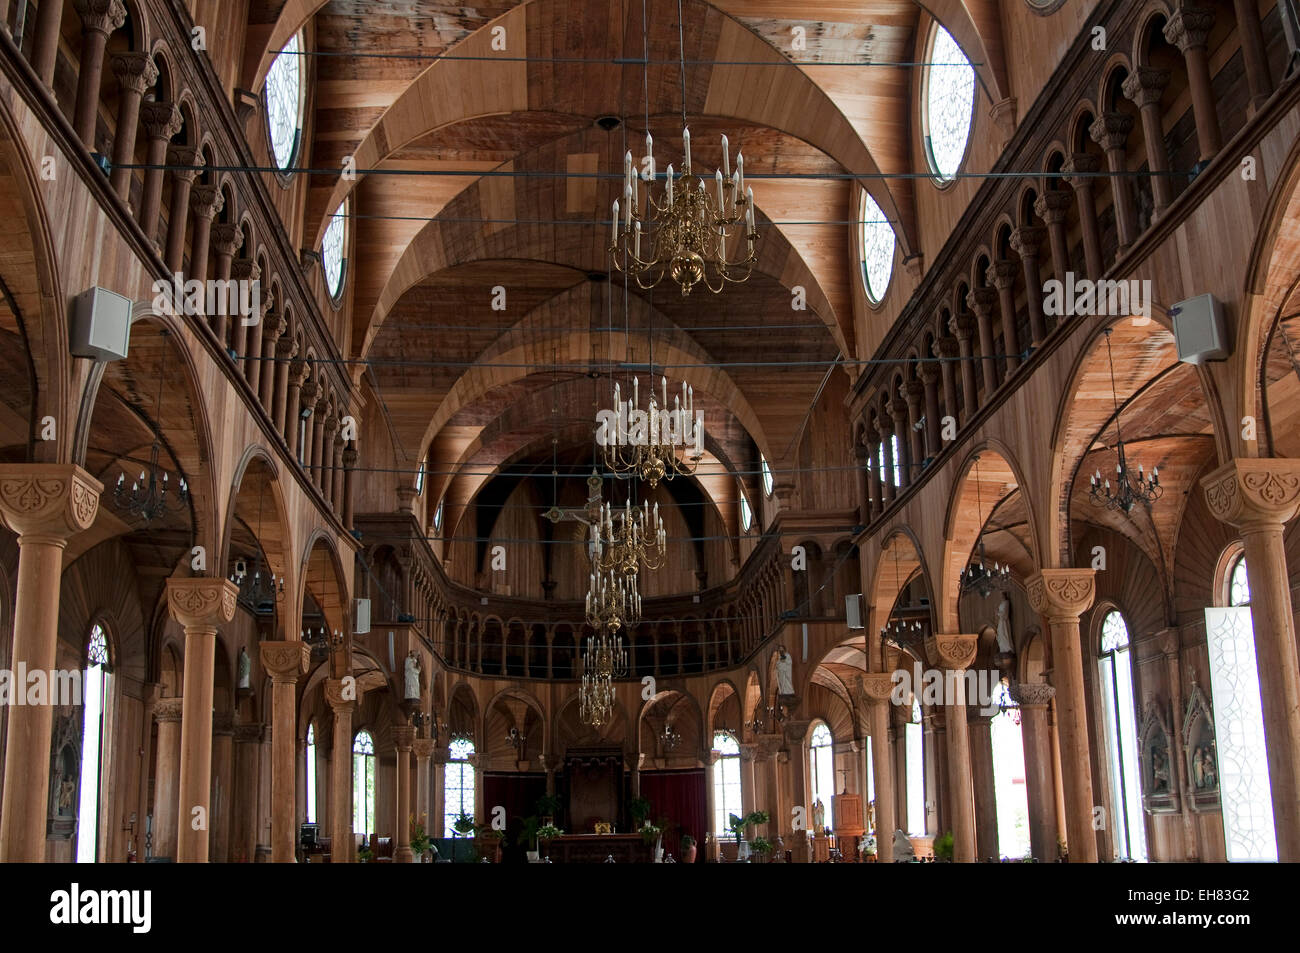 Wooden interior of St. Peter and Paul's Cathedral in Paramaribo, Suriname, South America - Stock Image